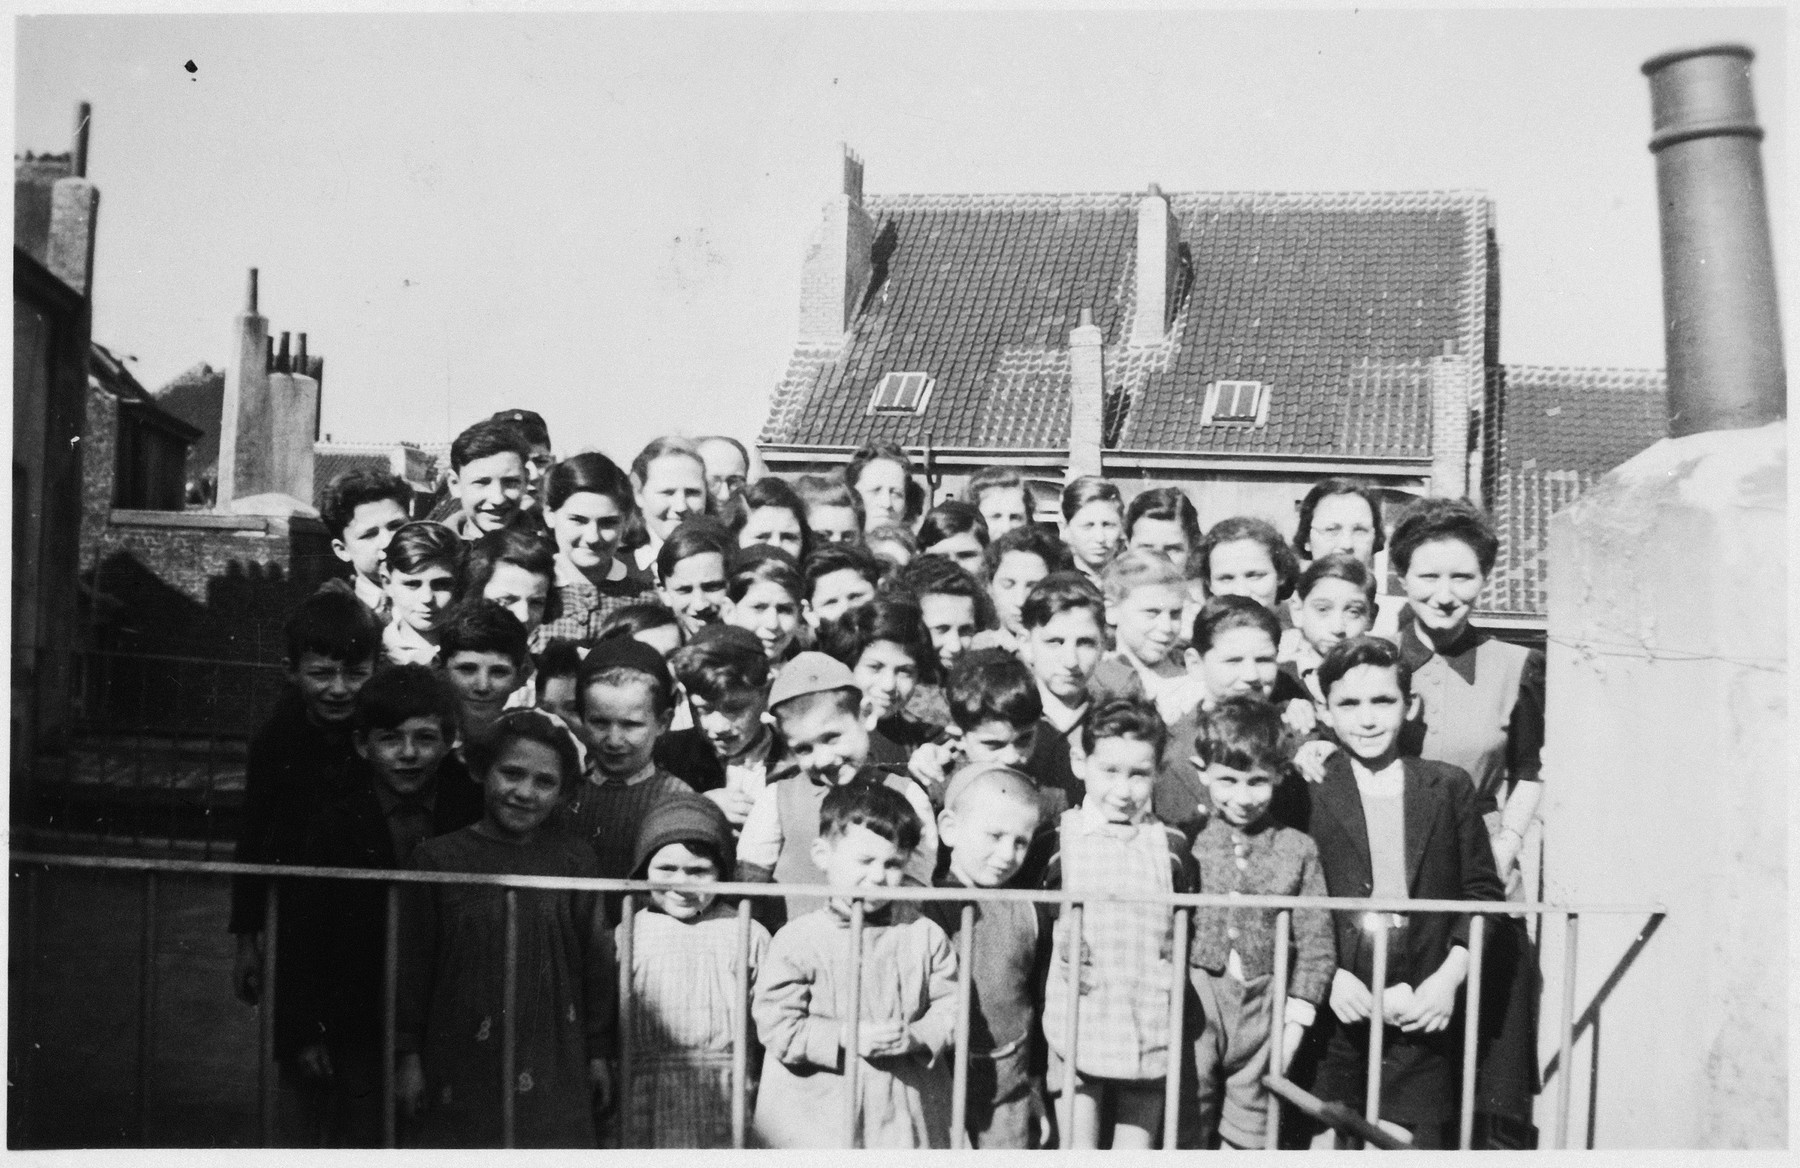 Group portrait of Jewish refugee children at the Orphelinat Israelite de Bruxelles children's home posing on the roof of the home at rue des Patriotes.  Among those pictured are: Herbert Weiss, Harry Sturm, Myriam Weinstein, Ruth Marcus, Jodeph Amsel, Albert Tennenbaum, Mlle Perlman, Spip, Manfred Somer, Manfred Krollik, Gaby Lehrer, Jef Adler, Eva Mozelsio, Steffi Ansbacher, Rachel Kirchenbaum, Nathan Kirchenbaum, Bessie Sturm, Myriam Gelbart, Mlle Brinkman and Rolf Apt.